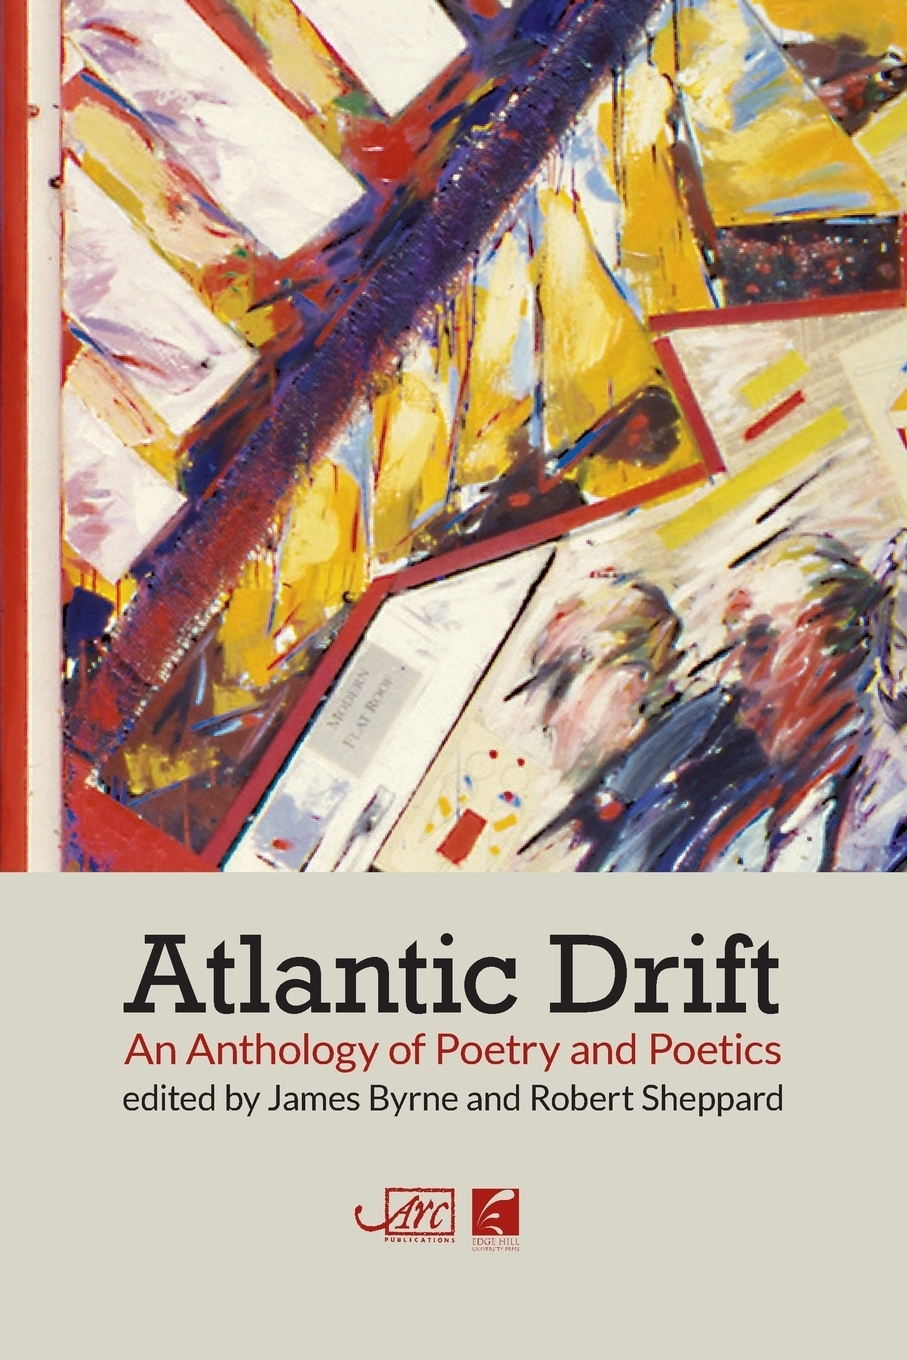 цены Atlantic Drift. An Anthology of Poetry and Poetics